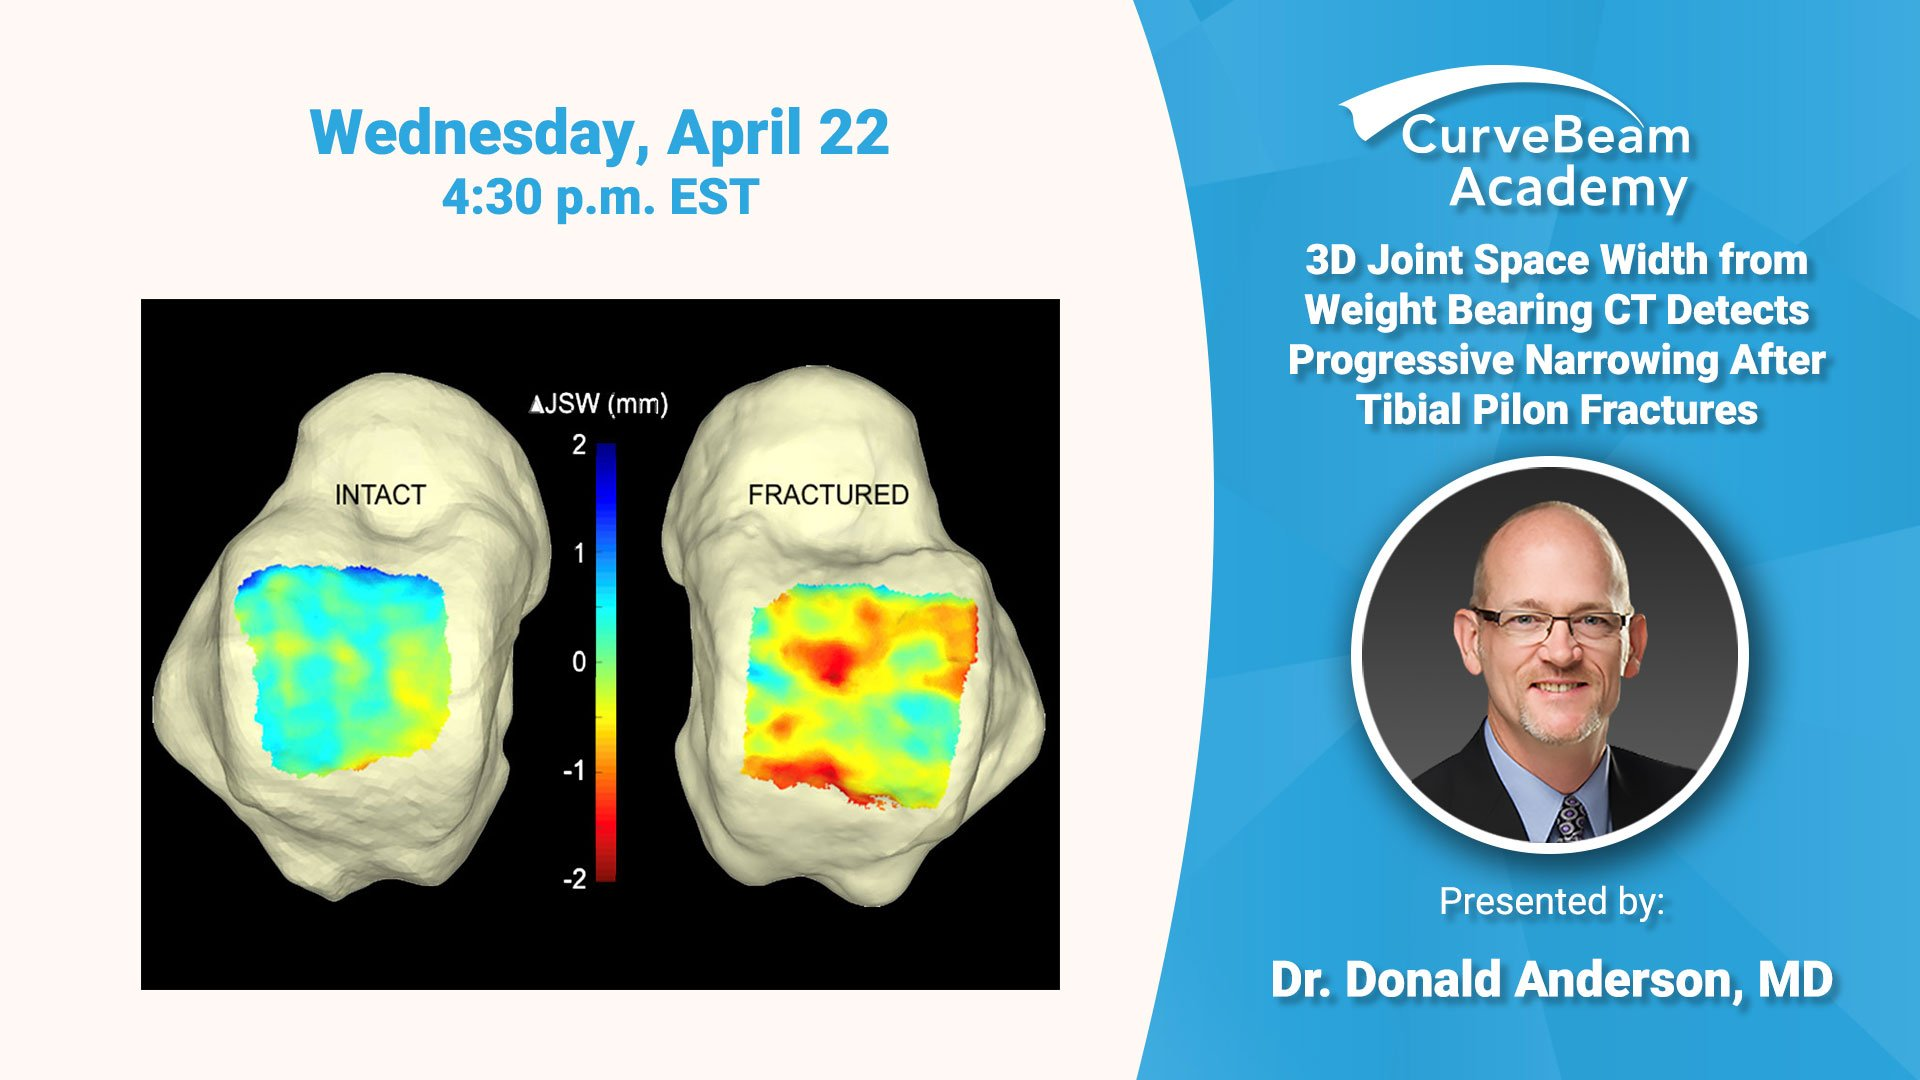 Webinar: 3D Joint Space Width From Weight Bearing CT Detects Progressive Narrowing After Tibial Pilon Fractures